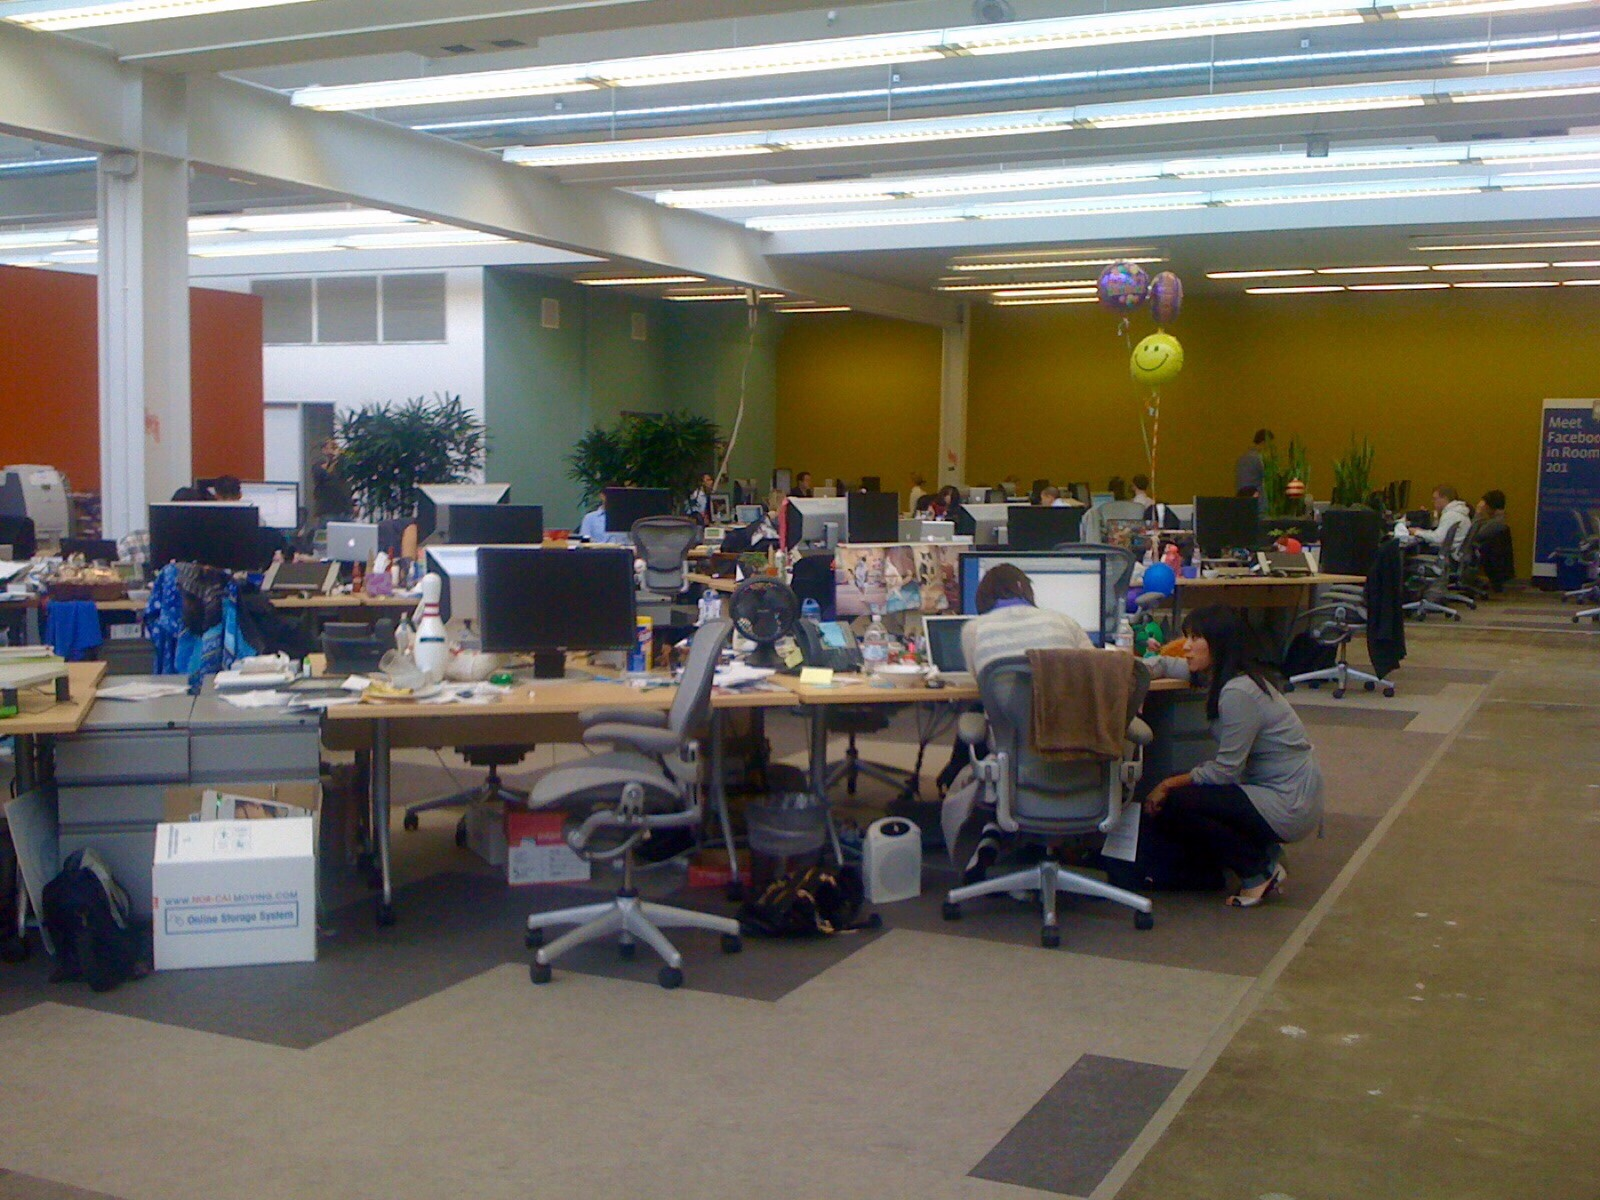 cool open office space cool office open spaces the industrial age of 21st century